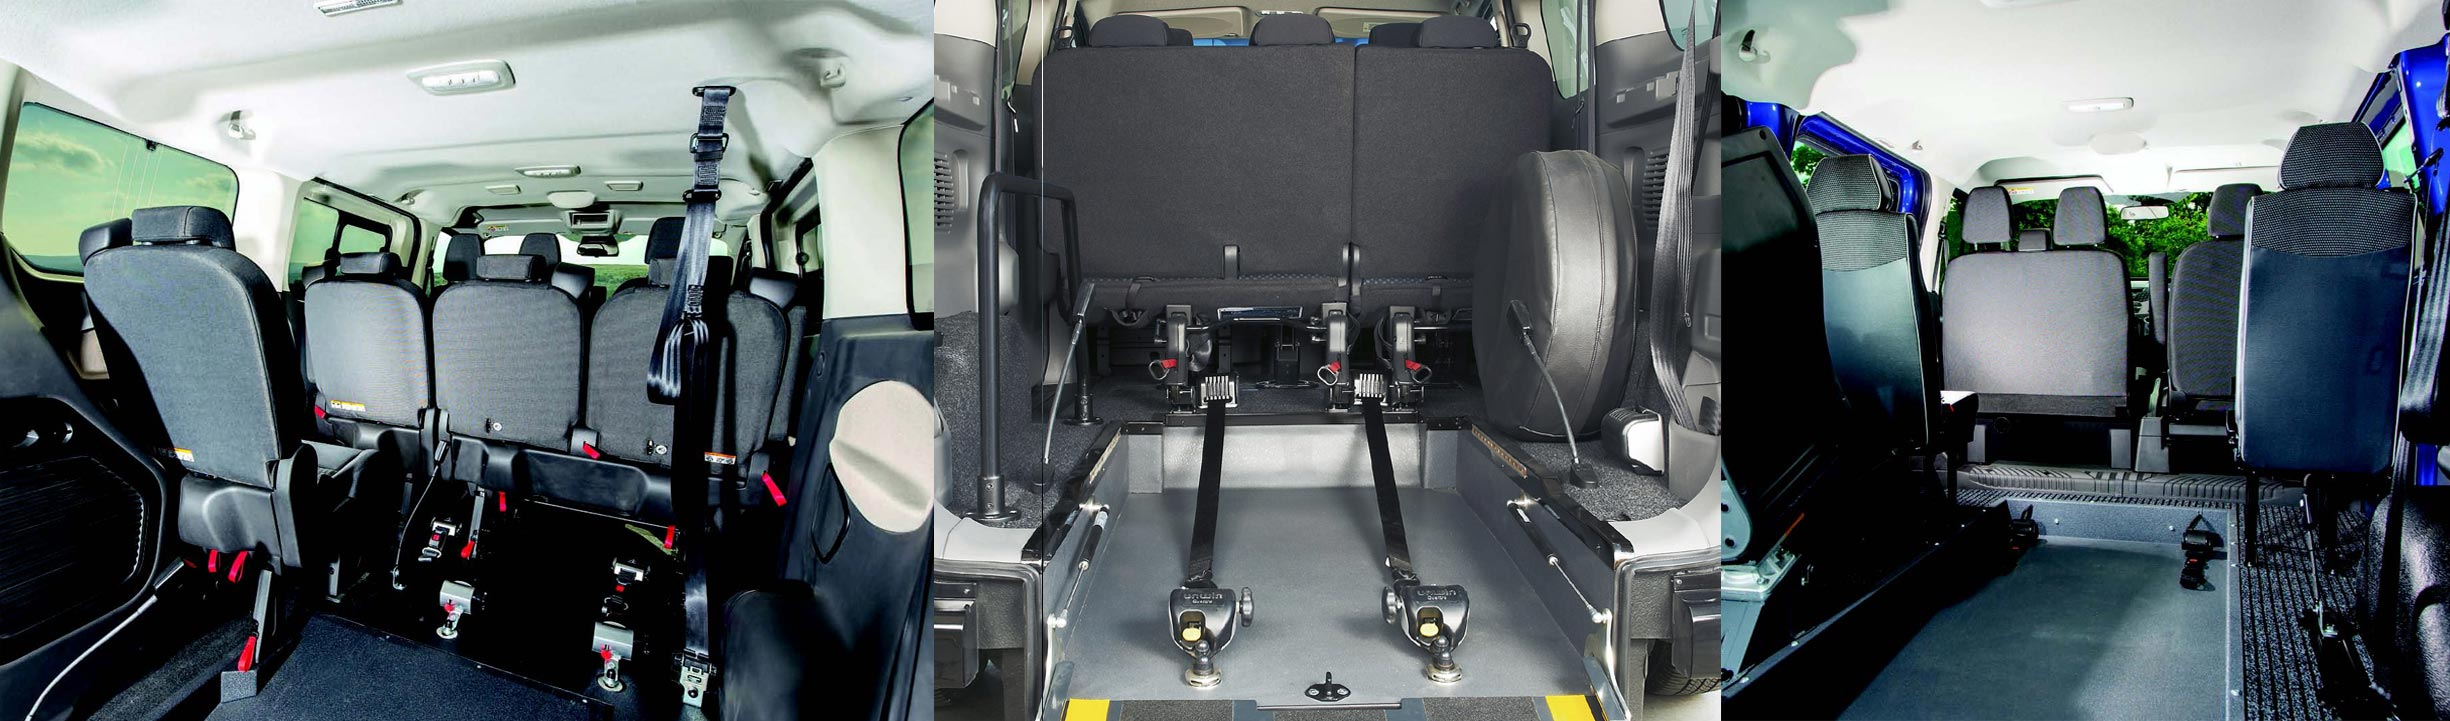 Wheelchair Accessible Vehicle Kit inside